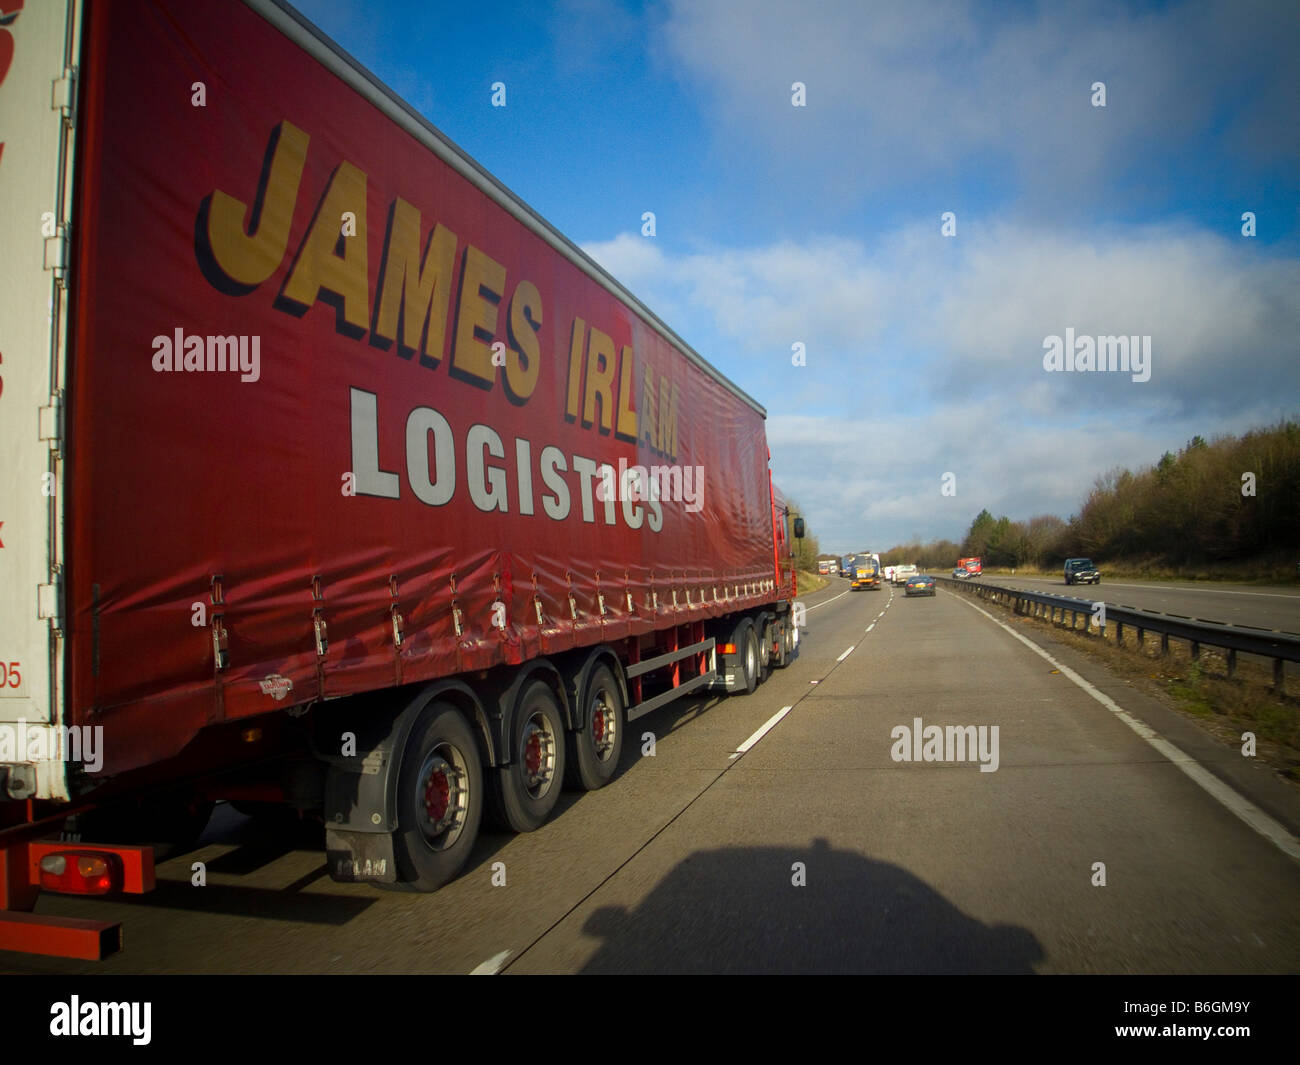 A James Irlam logistics Truck on the road - Stock Image